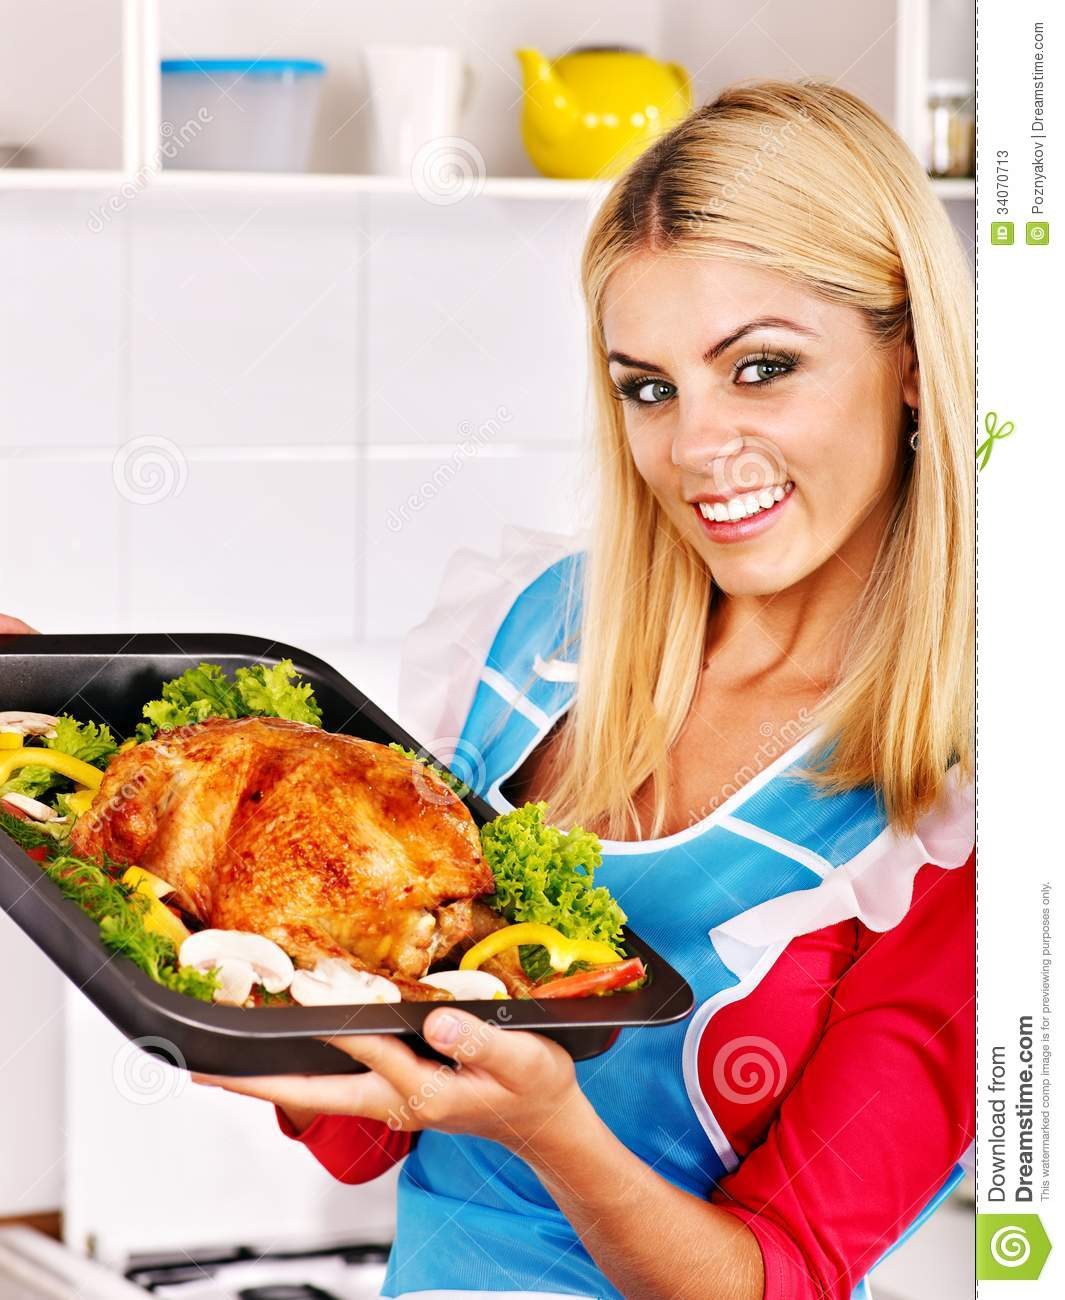 Woman Cooking Chicken At Kitchen. Stock Photos - Image: 34070713